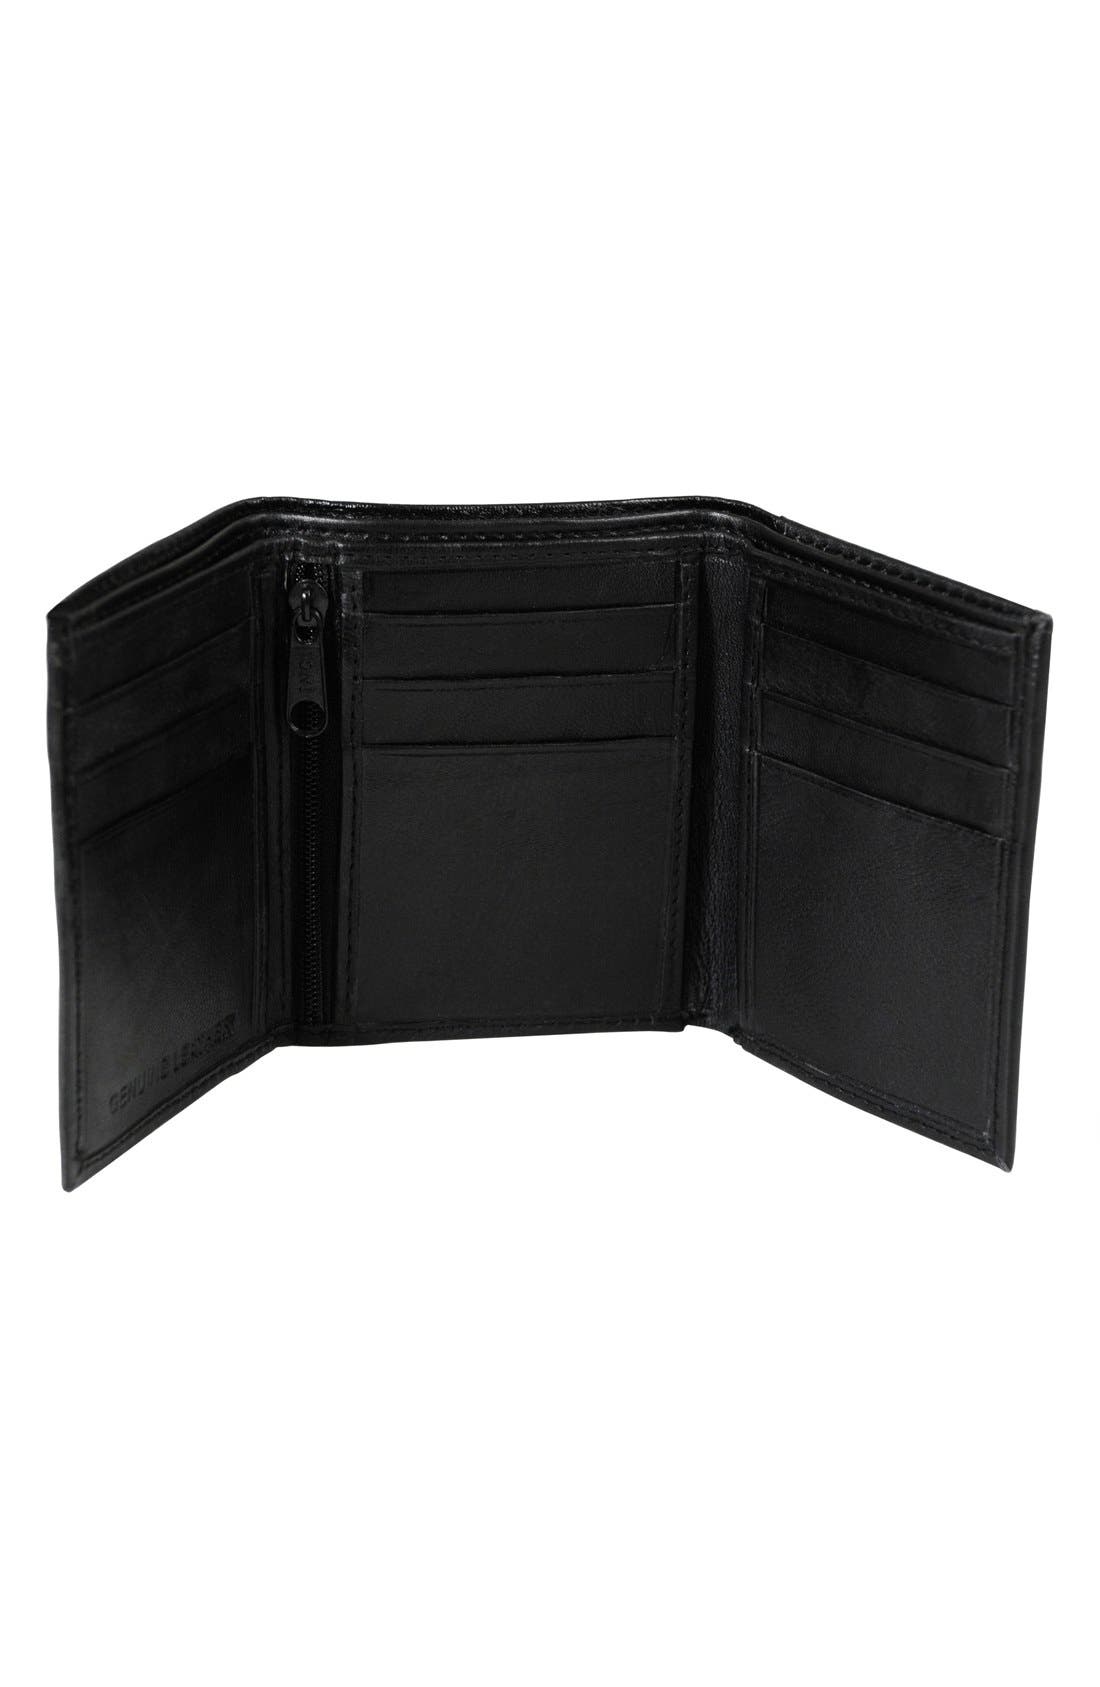 'Oxford' Monogram Leather Trifold Wallet,                             Alternate thumbnail 2, color,                             005